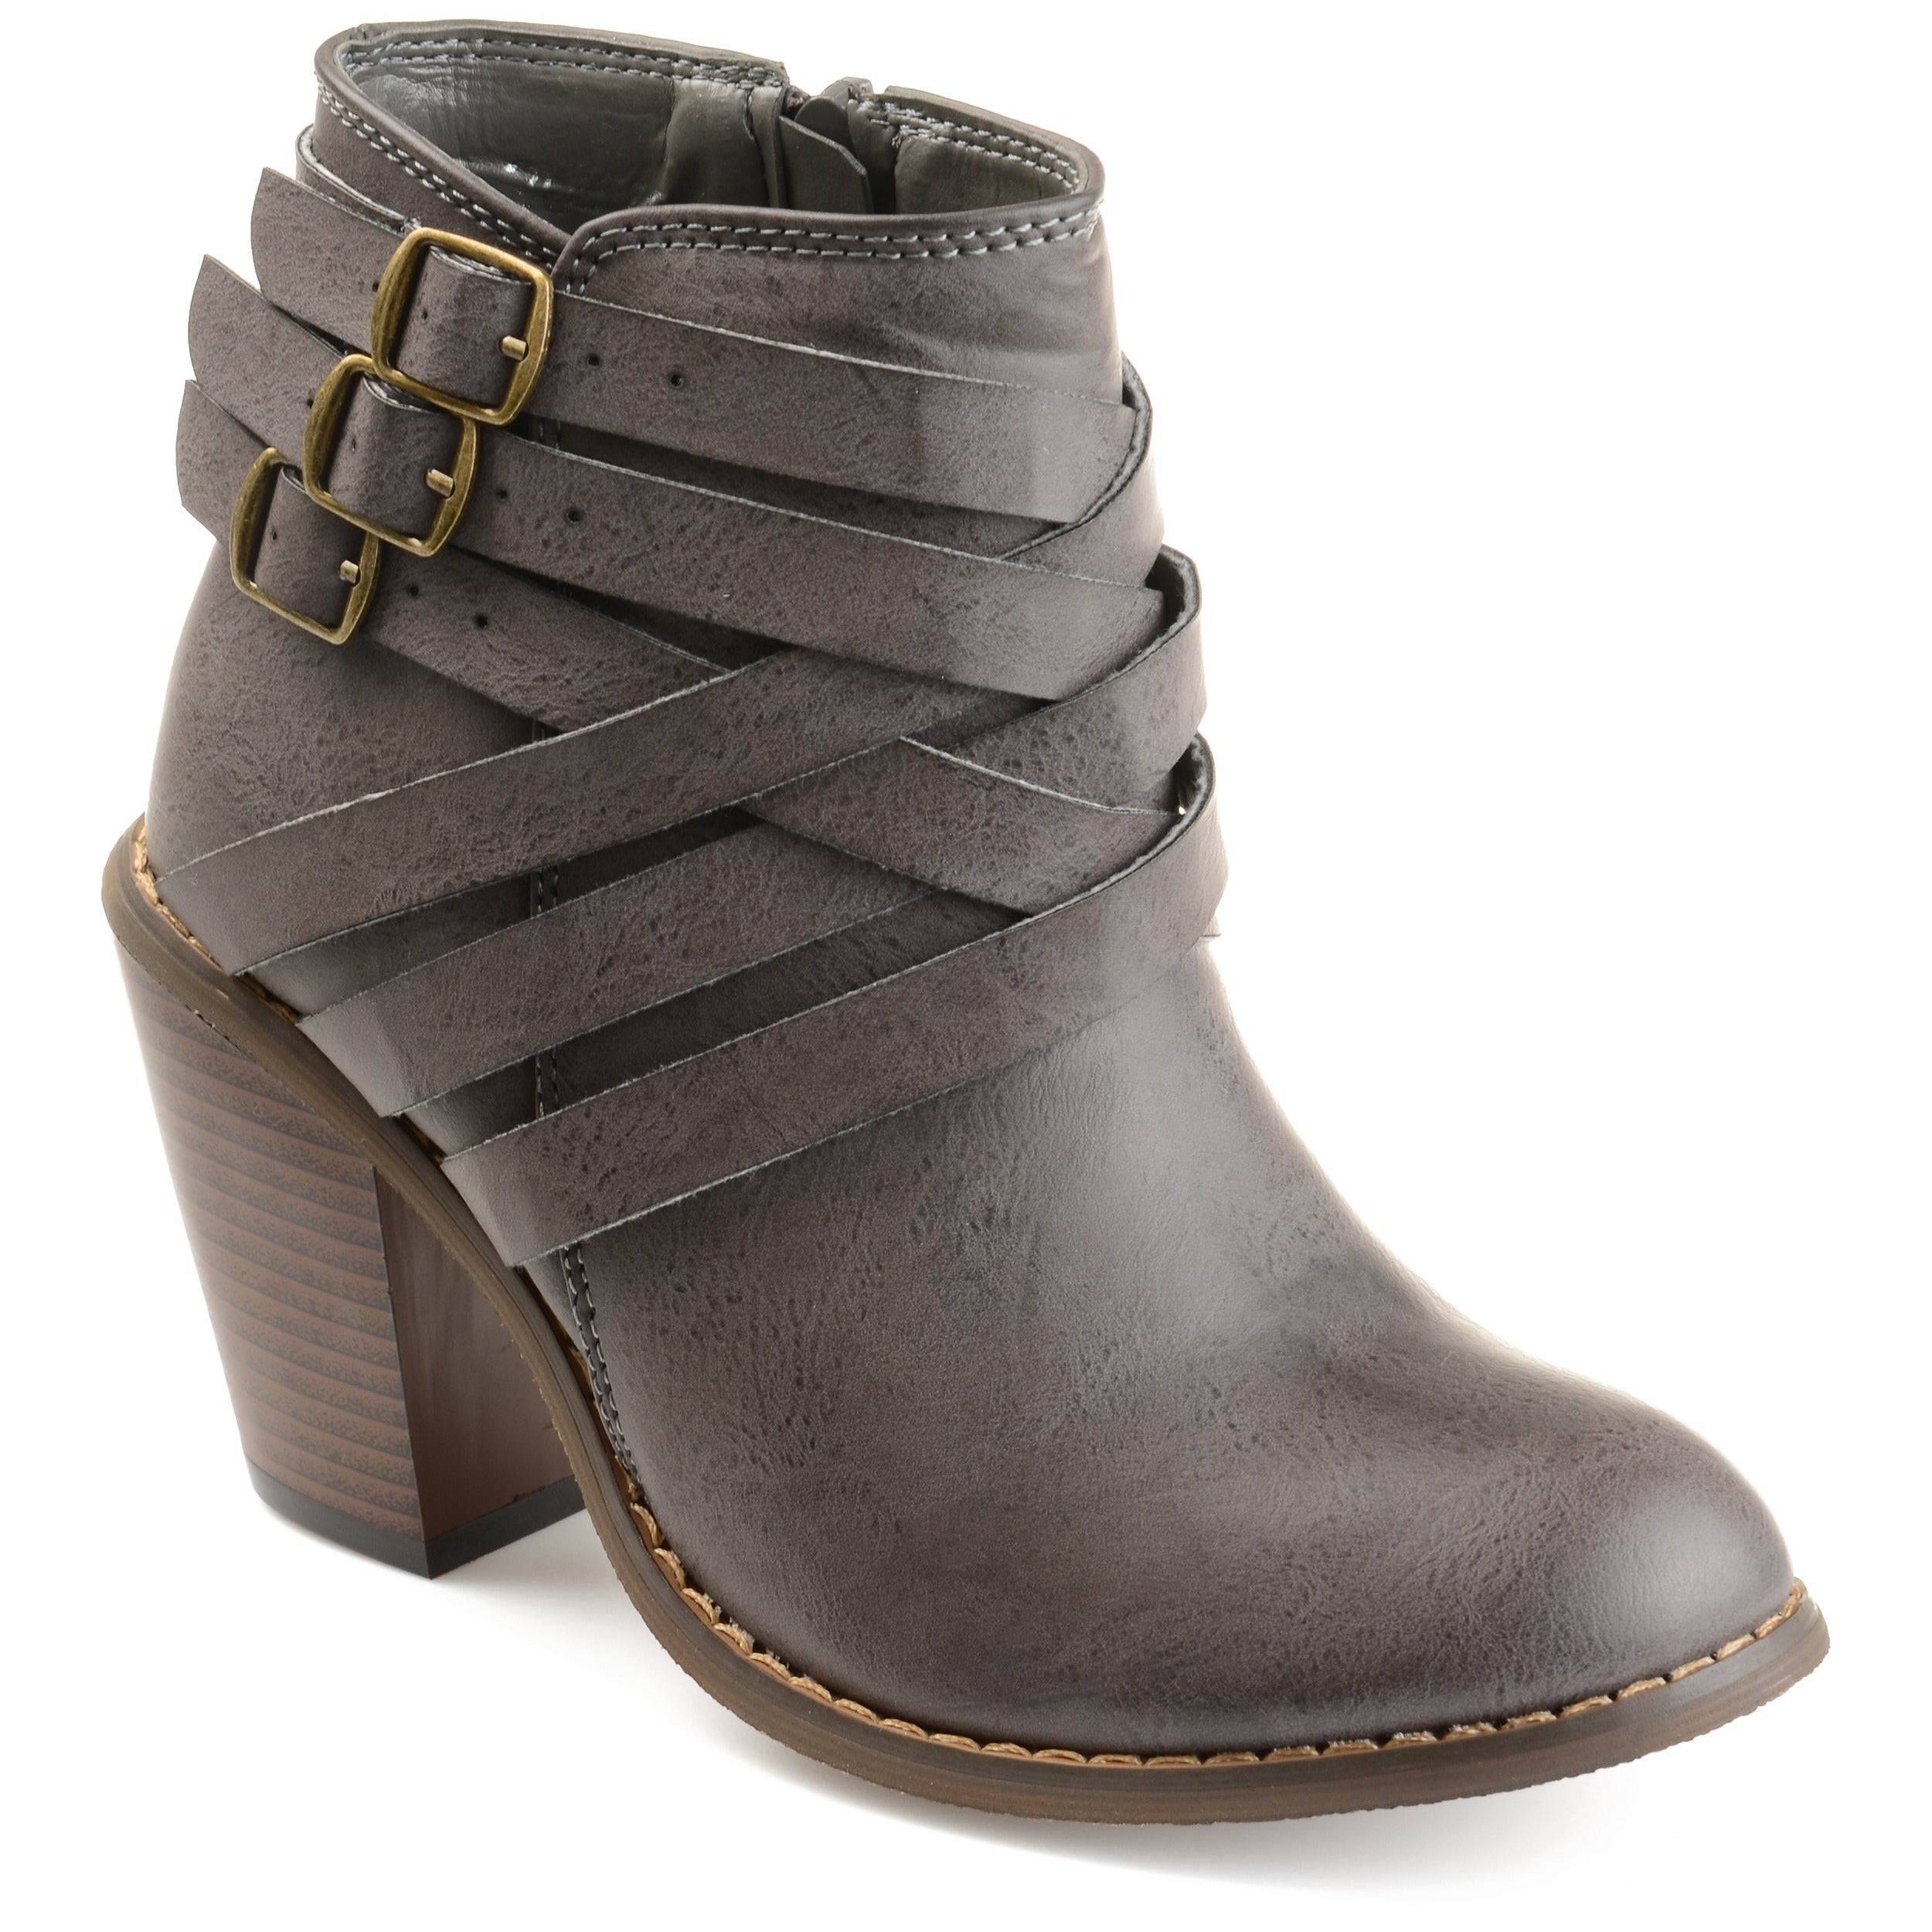 Journee Collection Strap ... Women's Ankle Boots d6kBK